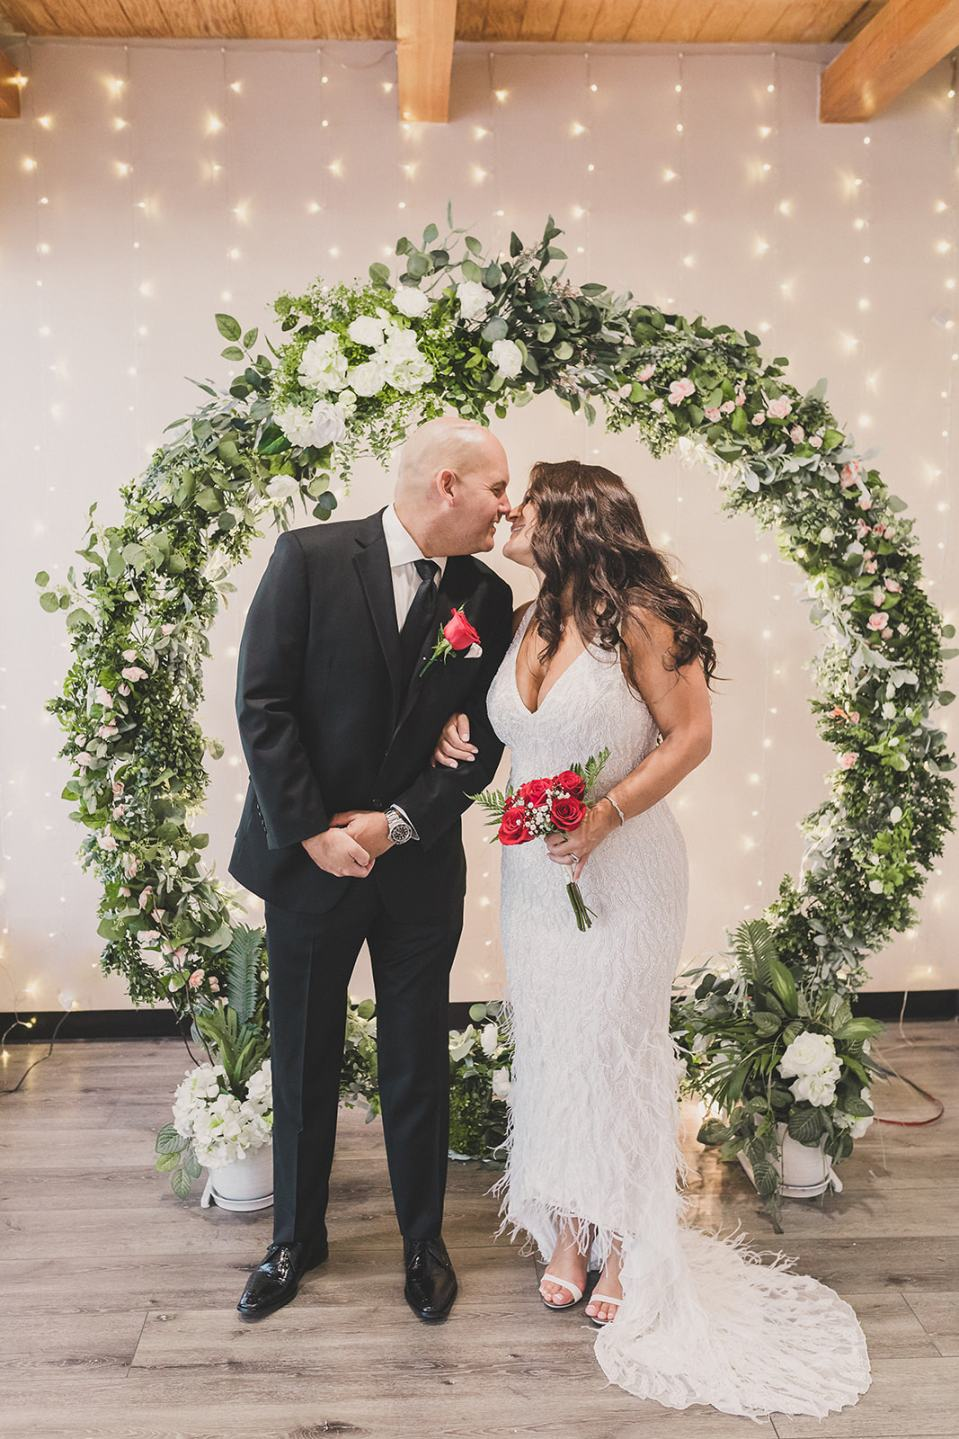 bride and groom pose by greenery circular arbor